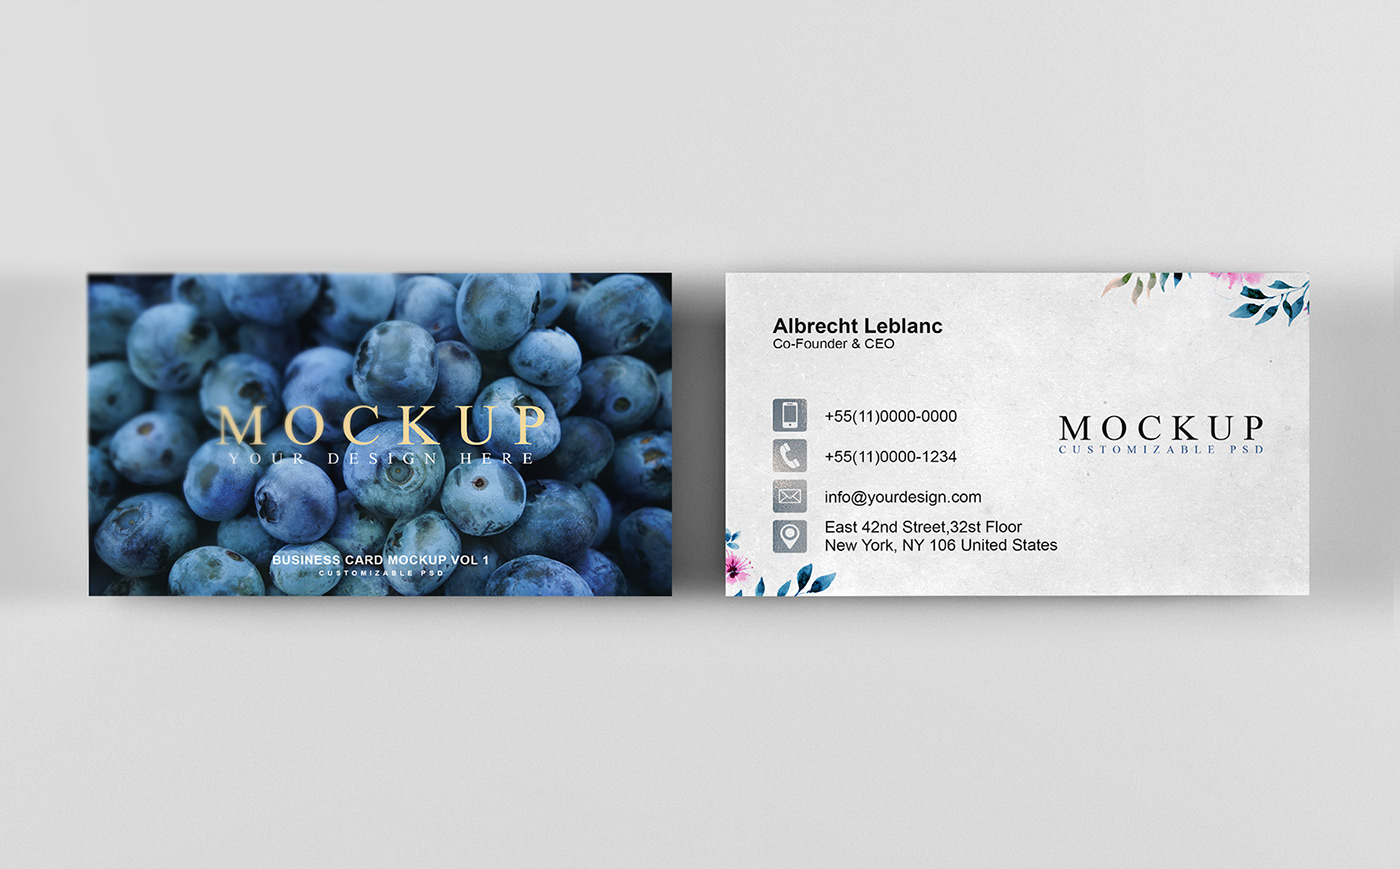 Business card mockup vol 1 psd download on behance zip file containing 7 psd files high quiality 300 dpi 2900 x 1800 px 1 pdf file download 7 business card mockup vol 1 reheart Gallery